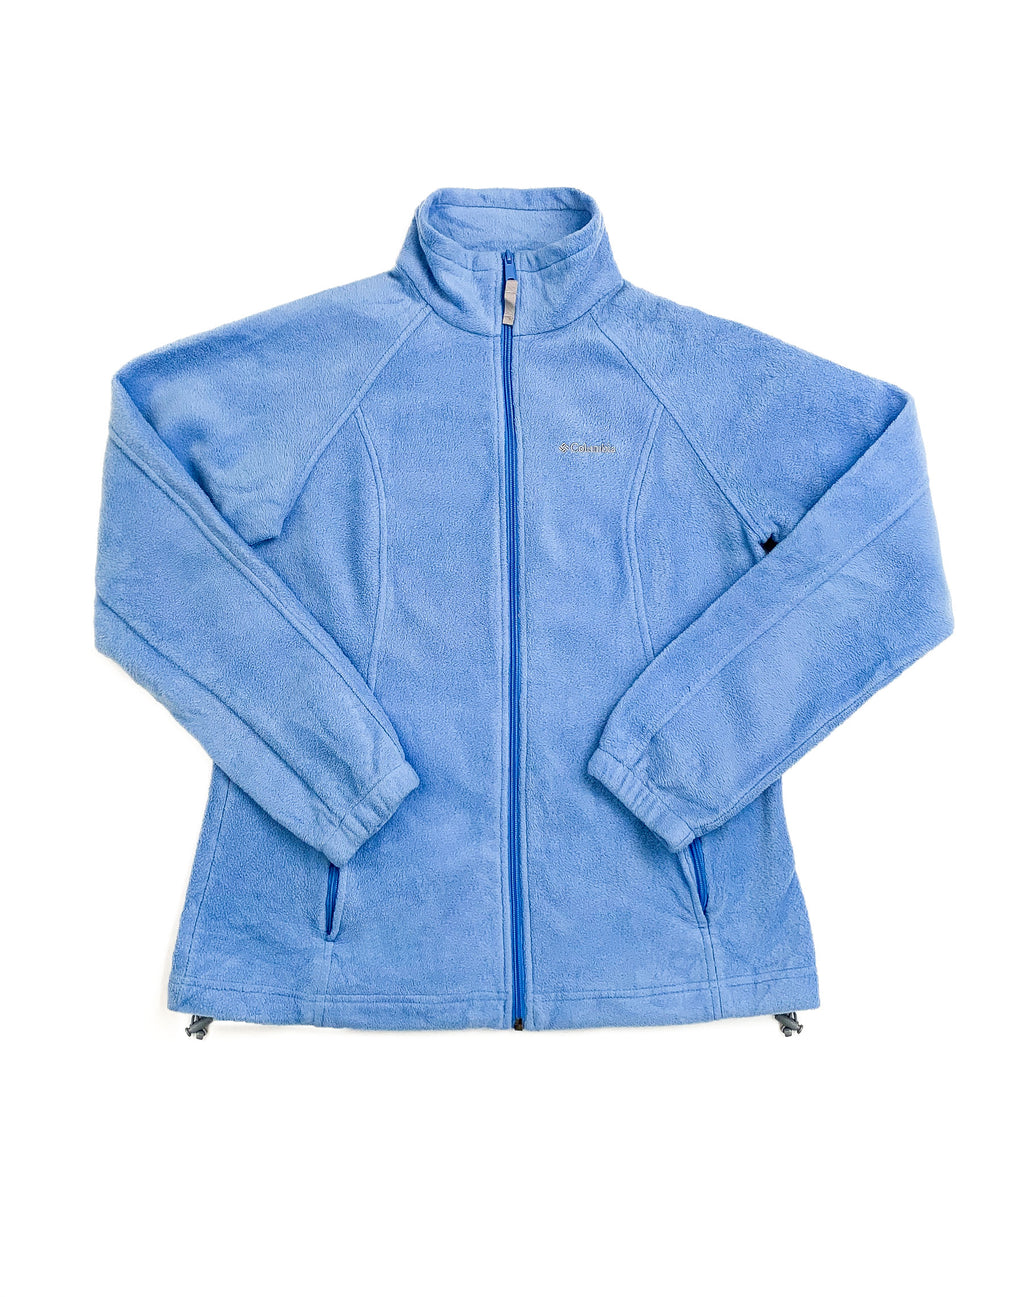 COLUMBIA LIGHT BLUE FLEECE